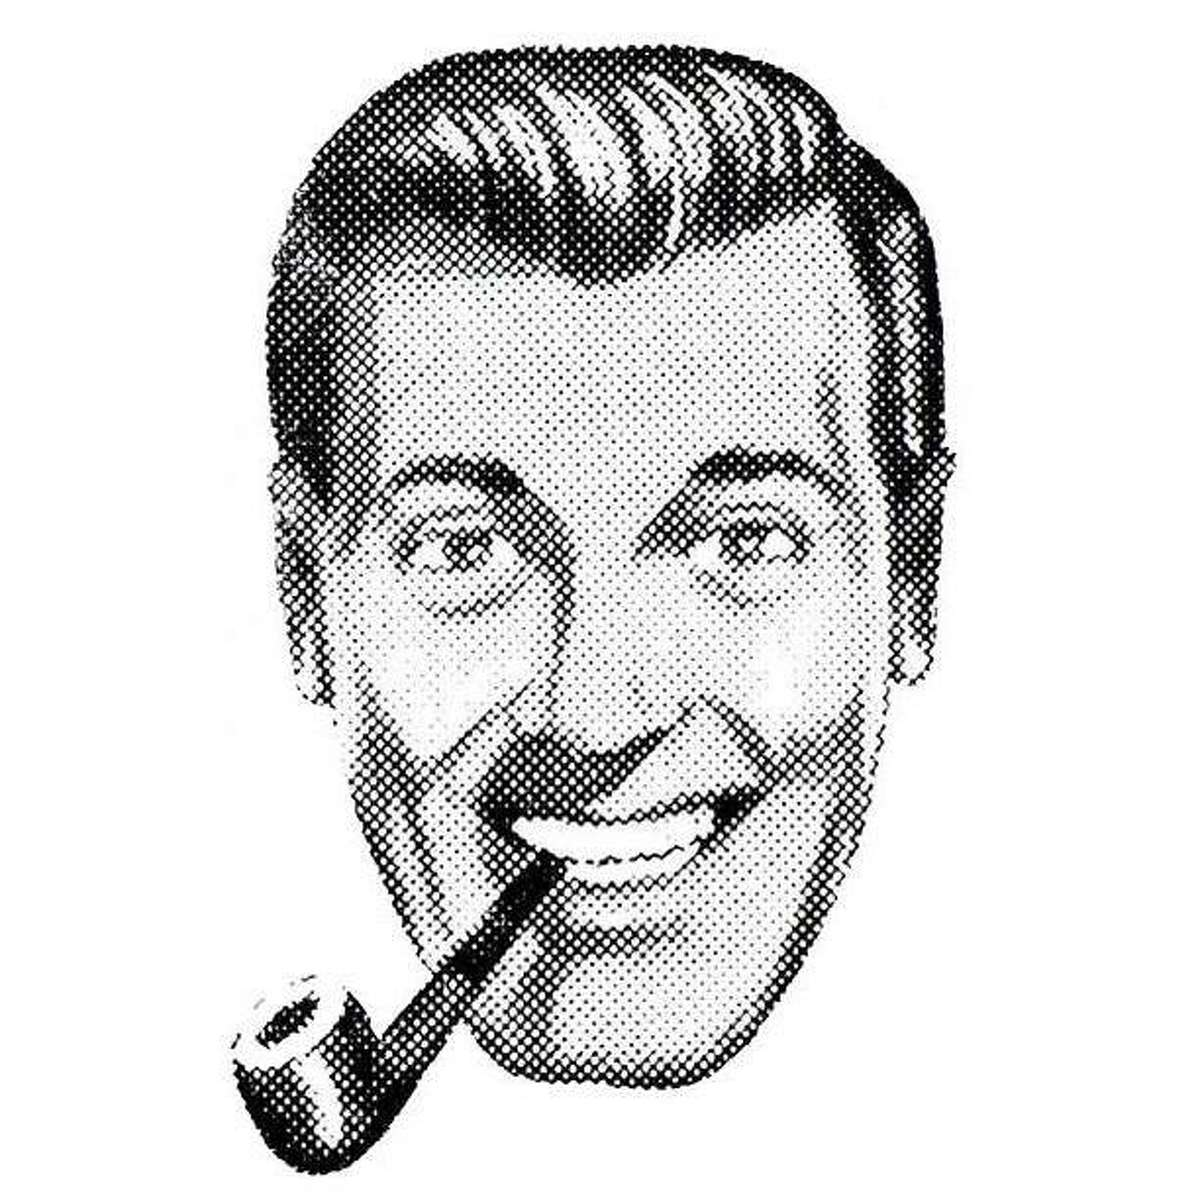 The face of the Church of the SubGenius